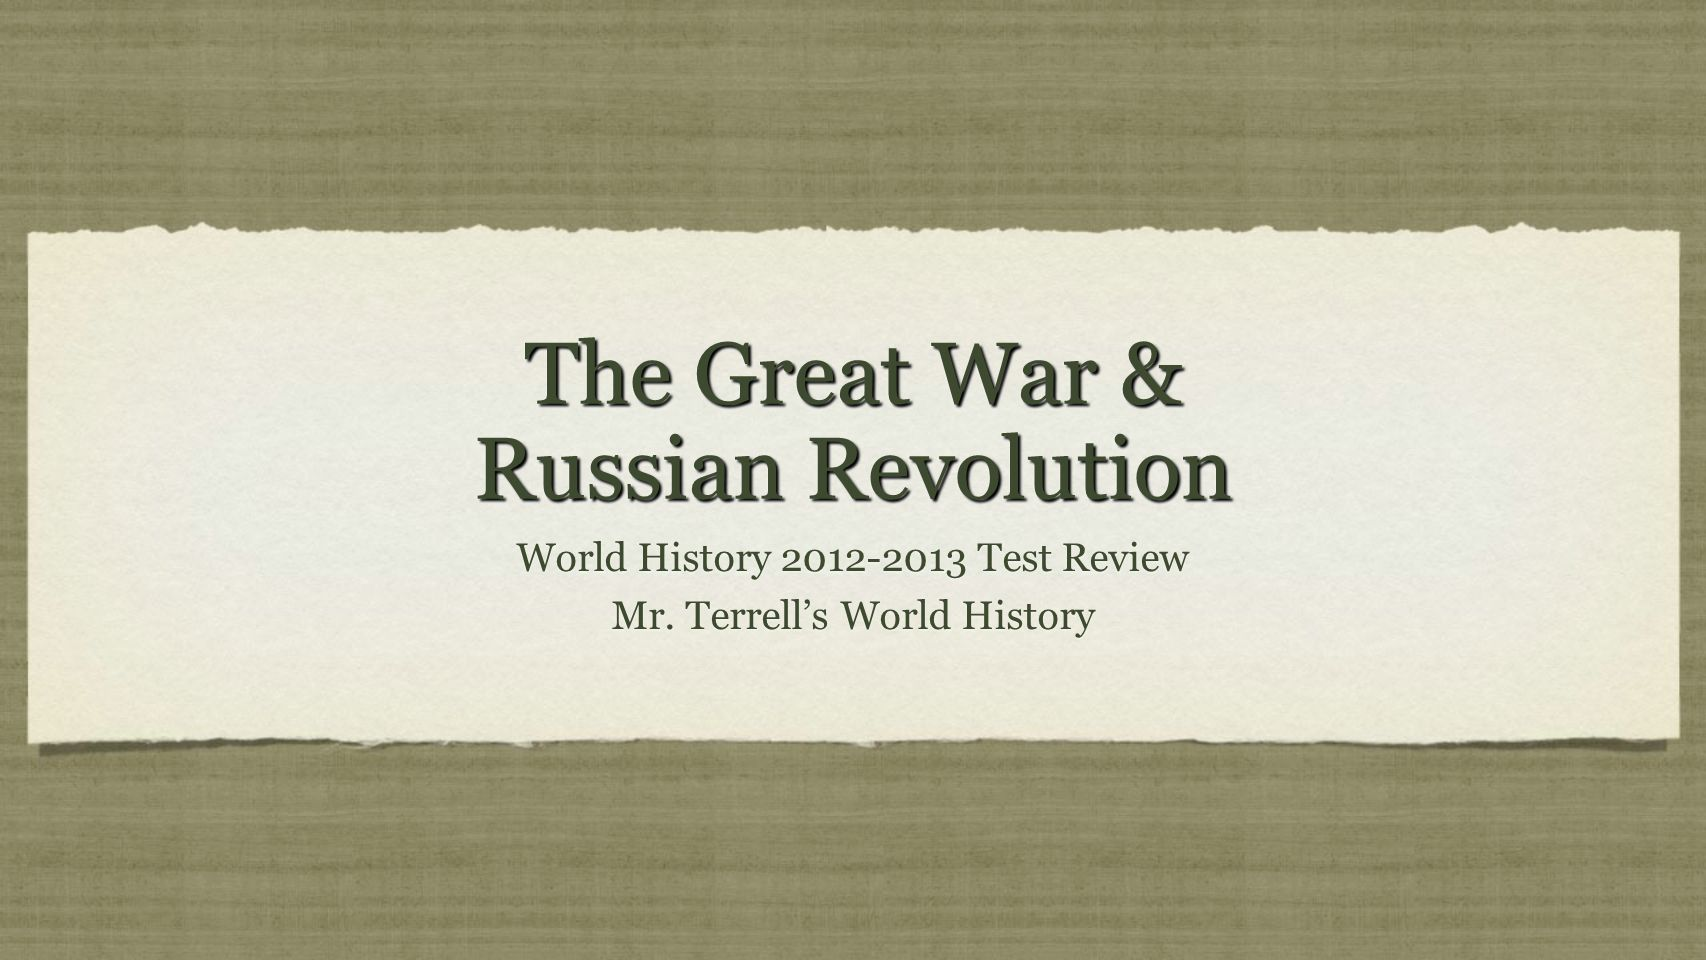 The Great War & Russian Revolution